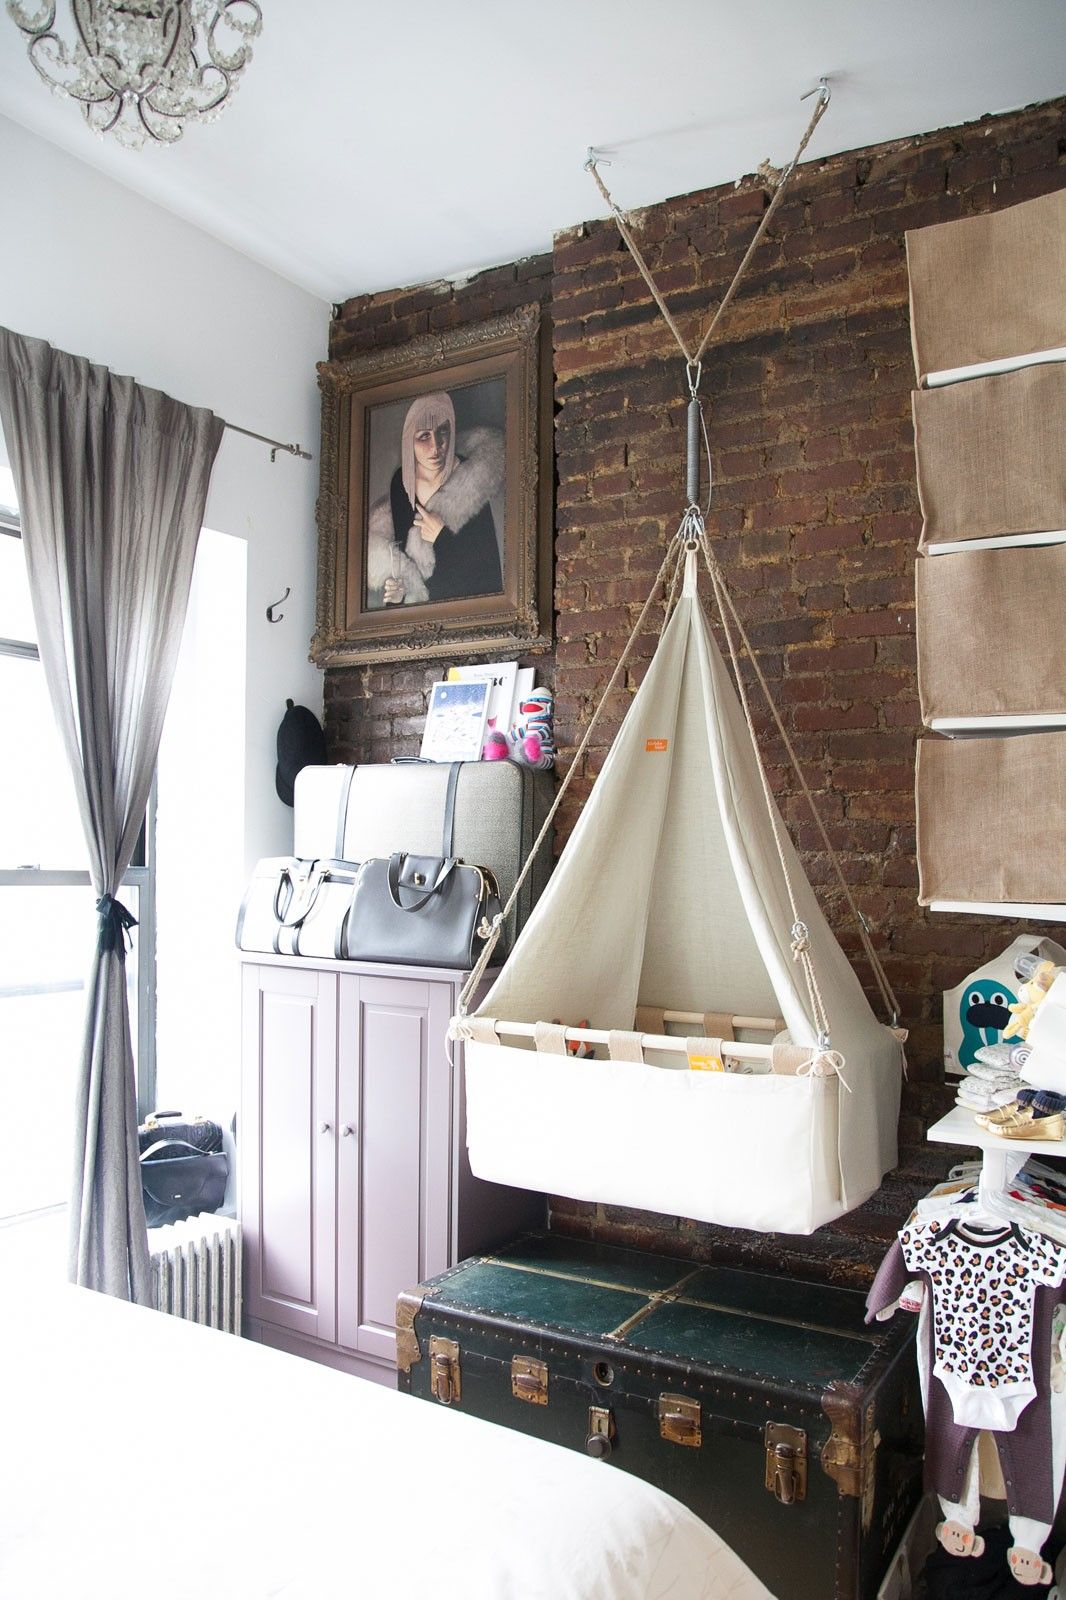 Baby Room Decor Tips For Small Spaces - NYC | Tiny apartments ...